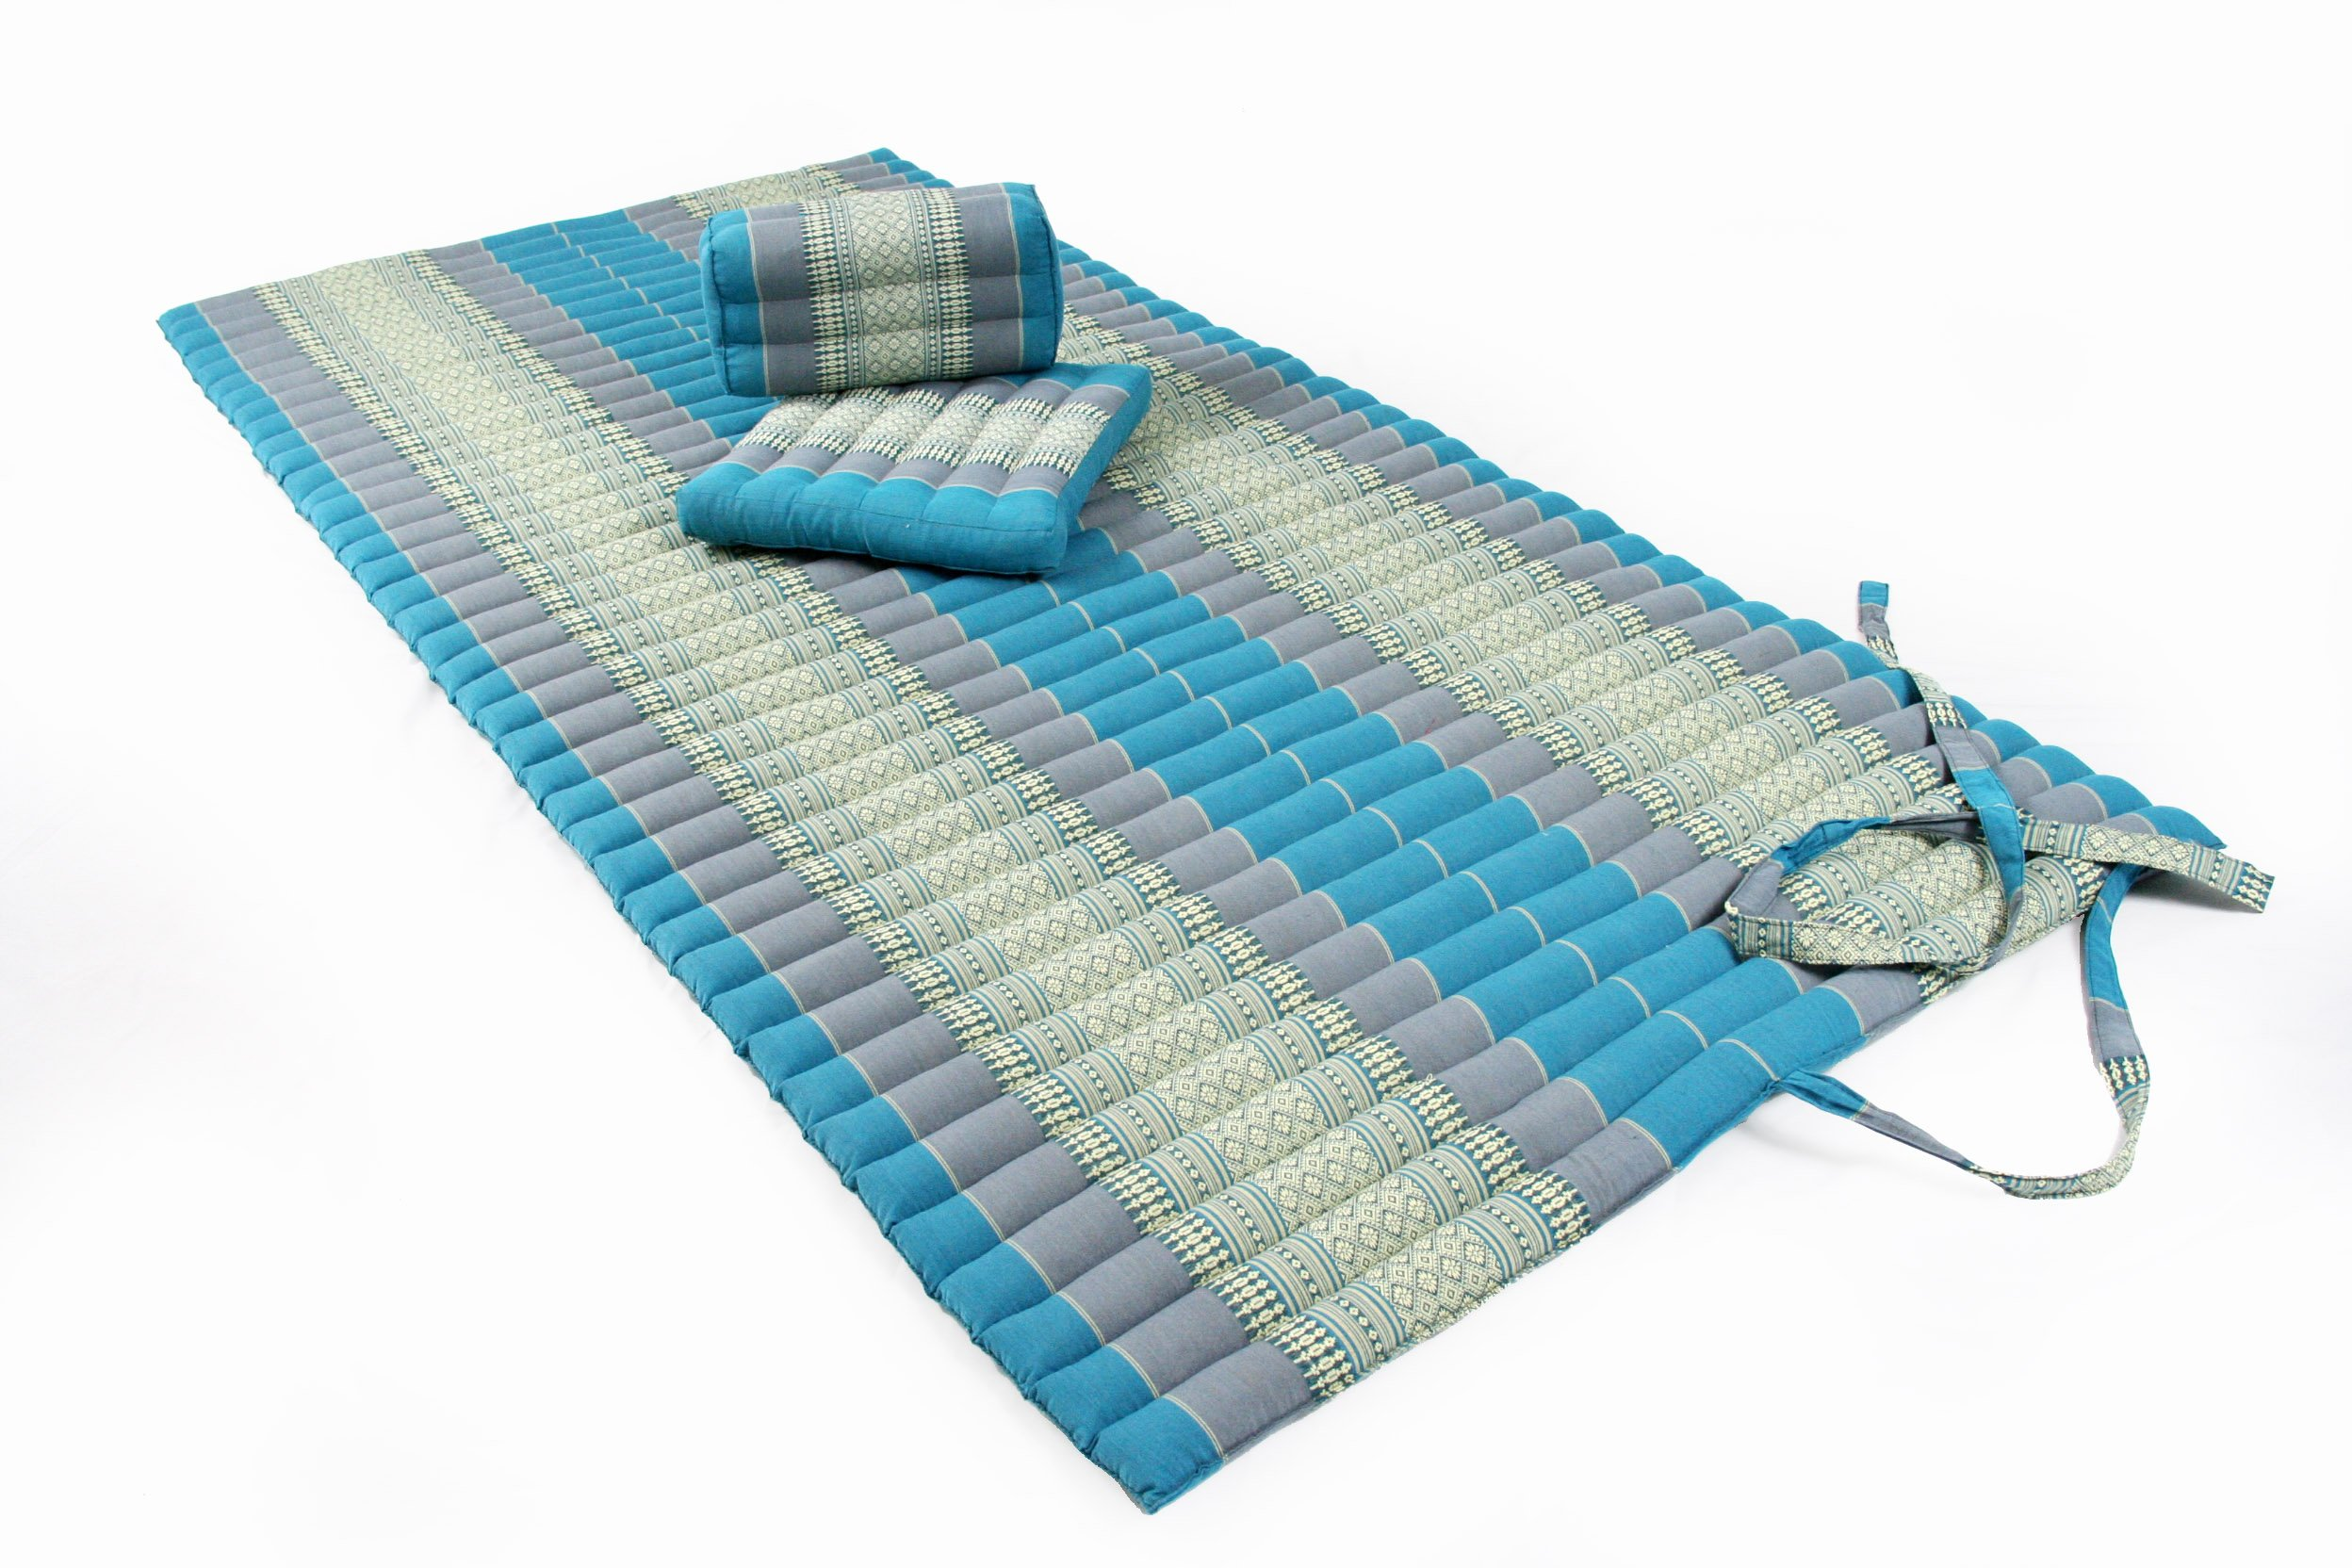 Yogaset I: Rollmat + 2 Cushions, All Filled with 100% Natural Kapok, Thai Traditional Design Skyblues by Handelsturm